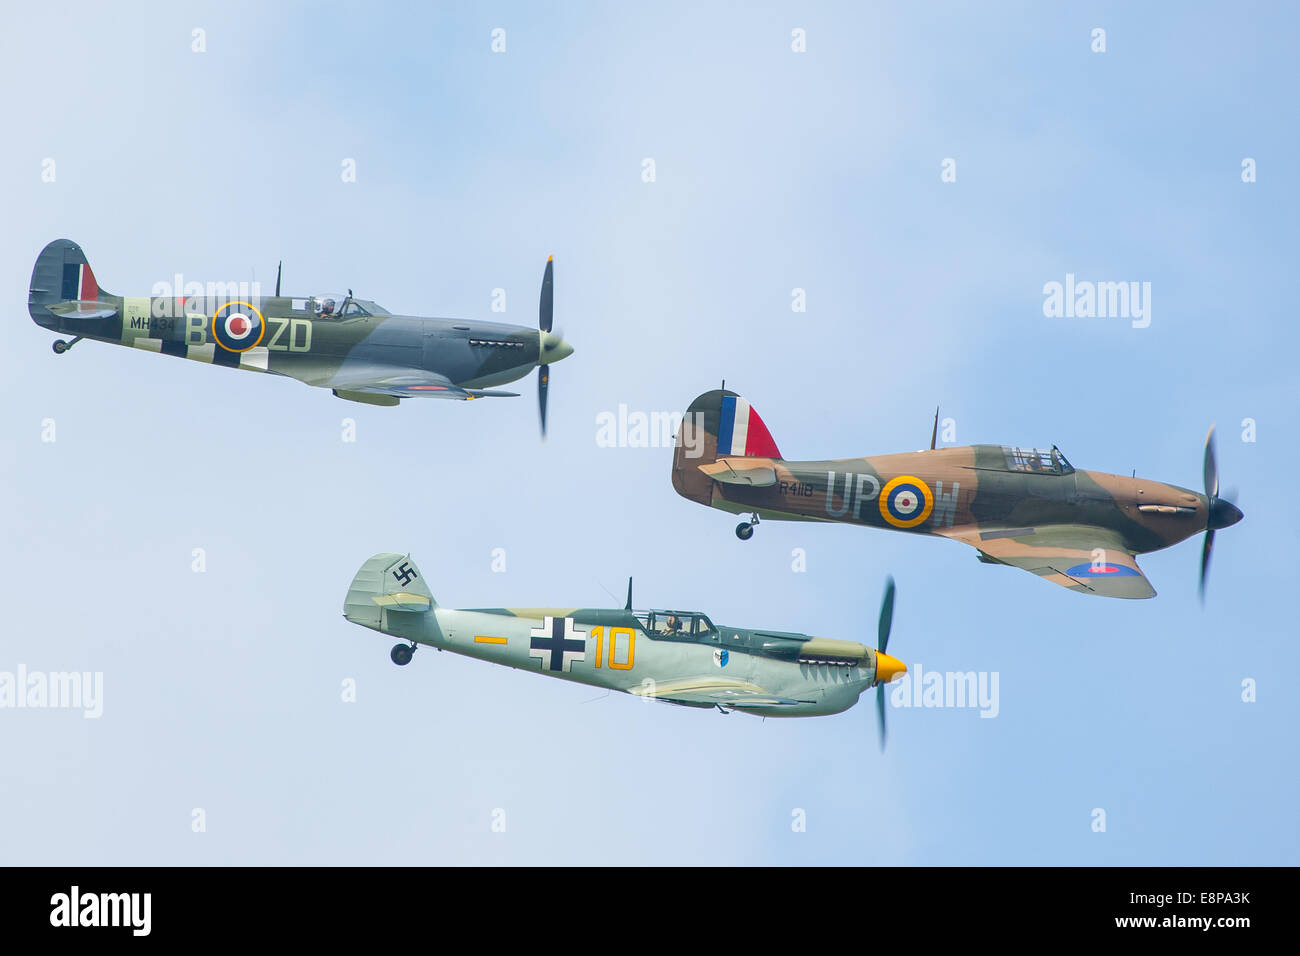 Spitfire, messerschmitt and Hurricane display at the Goodwood Revival 2014, West Sussex, UK - Stock Image